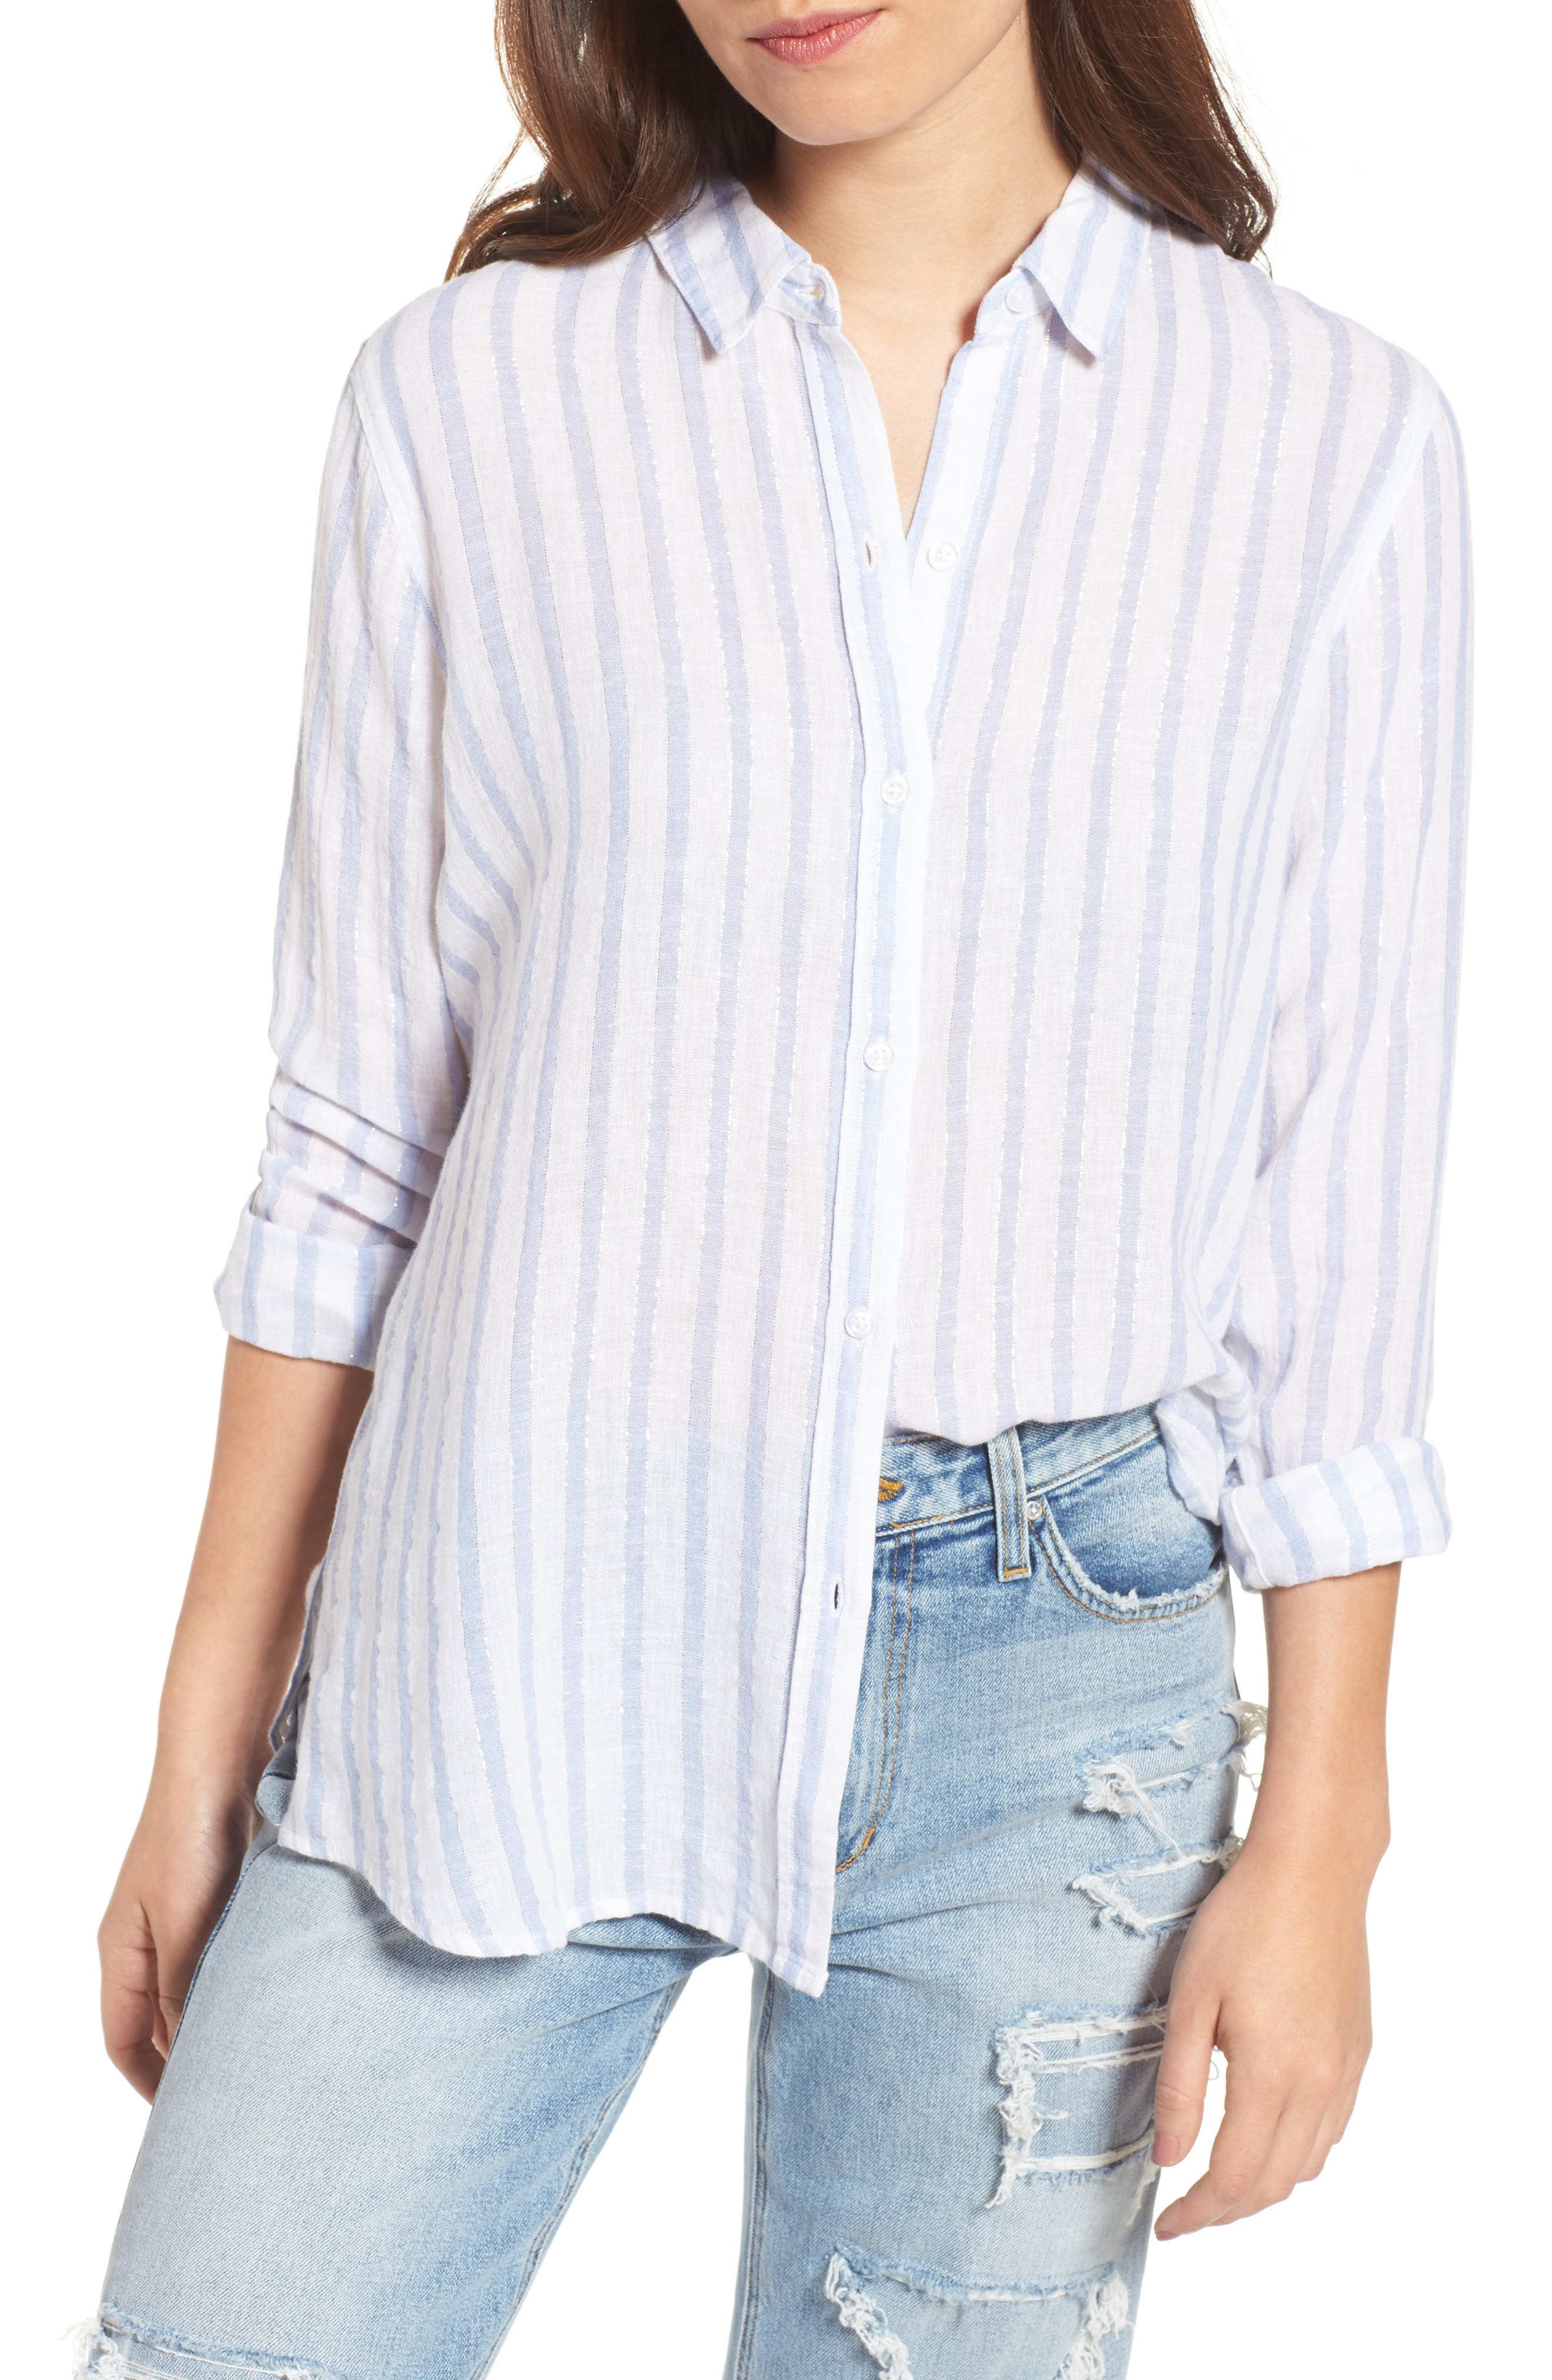 Sydney Vertical Shimmer Stripe Linen Blend Shirt,                             Main thumbnail 1, color,                             473